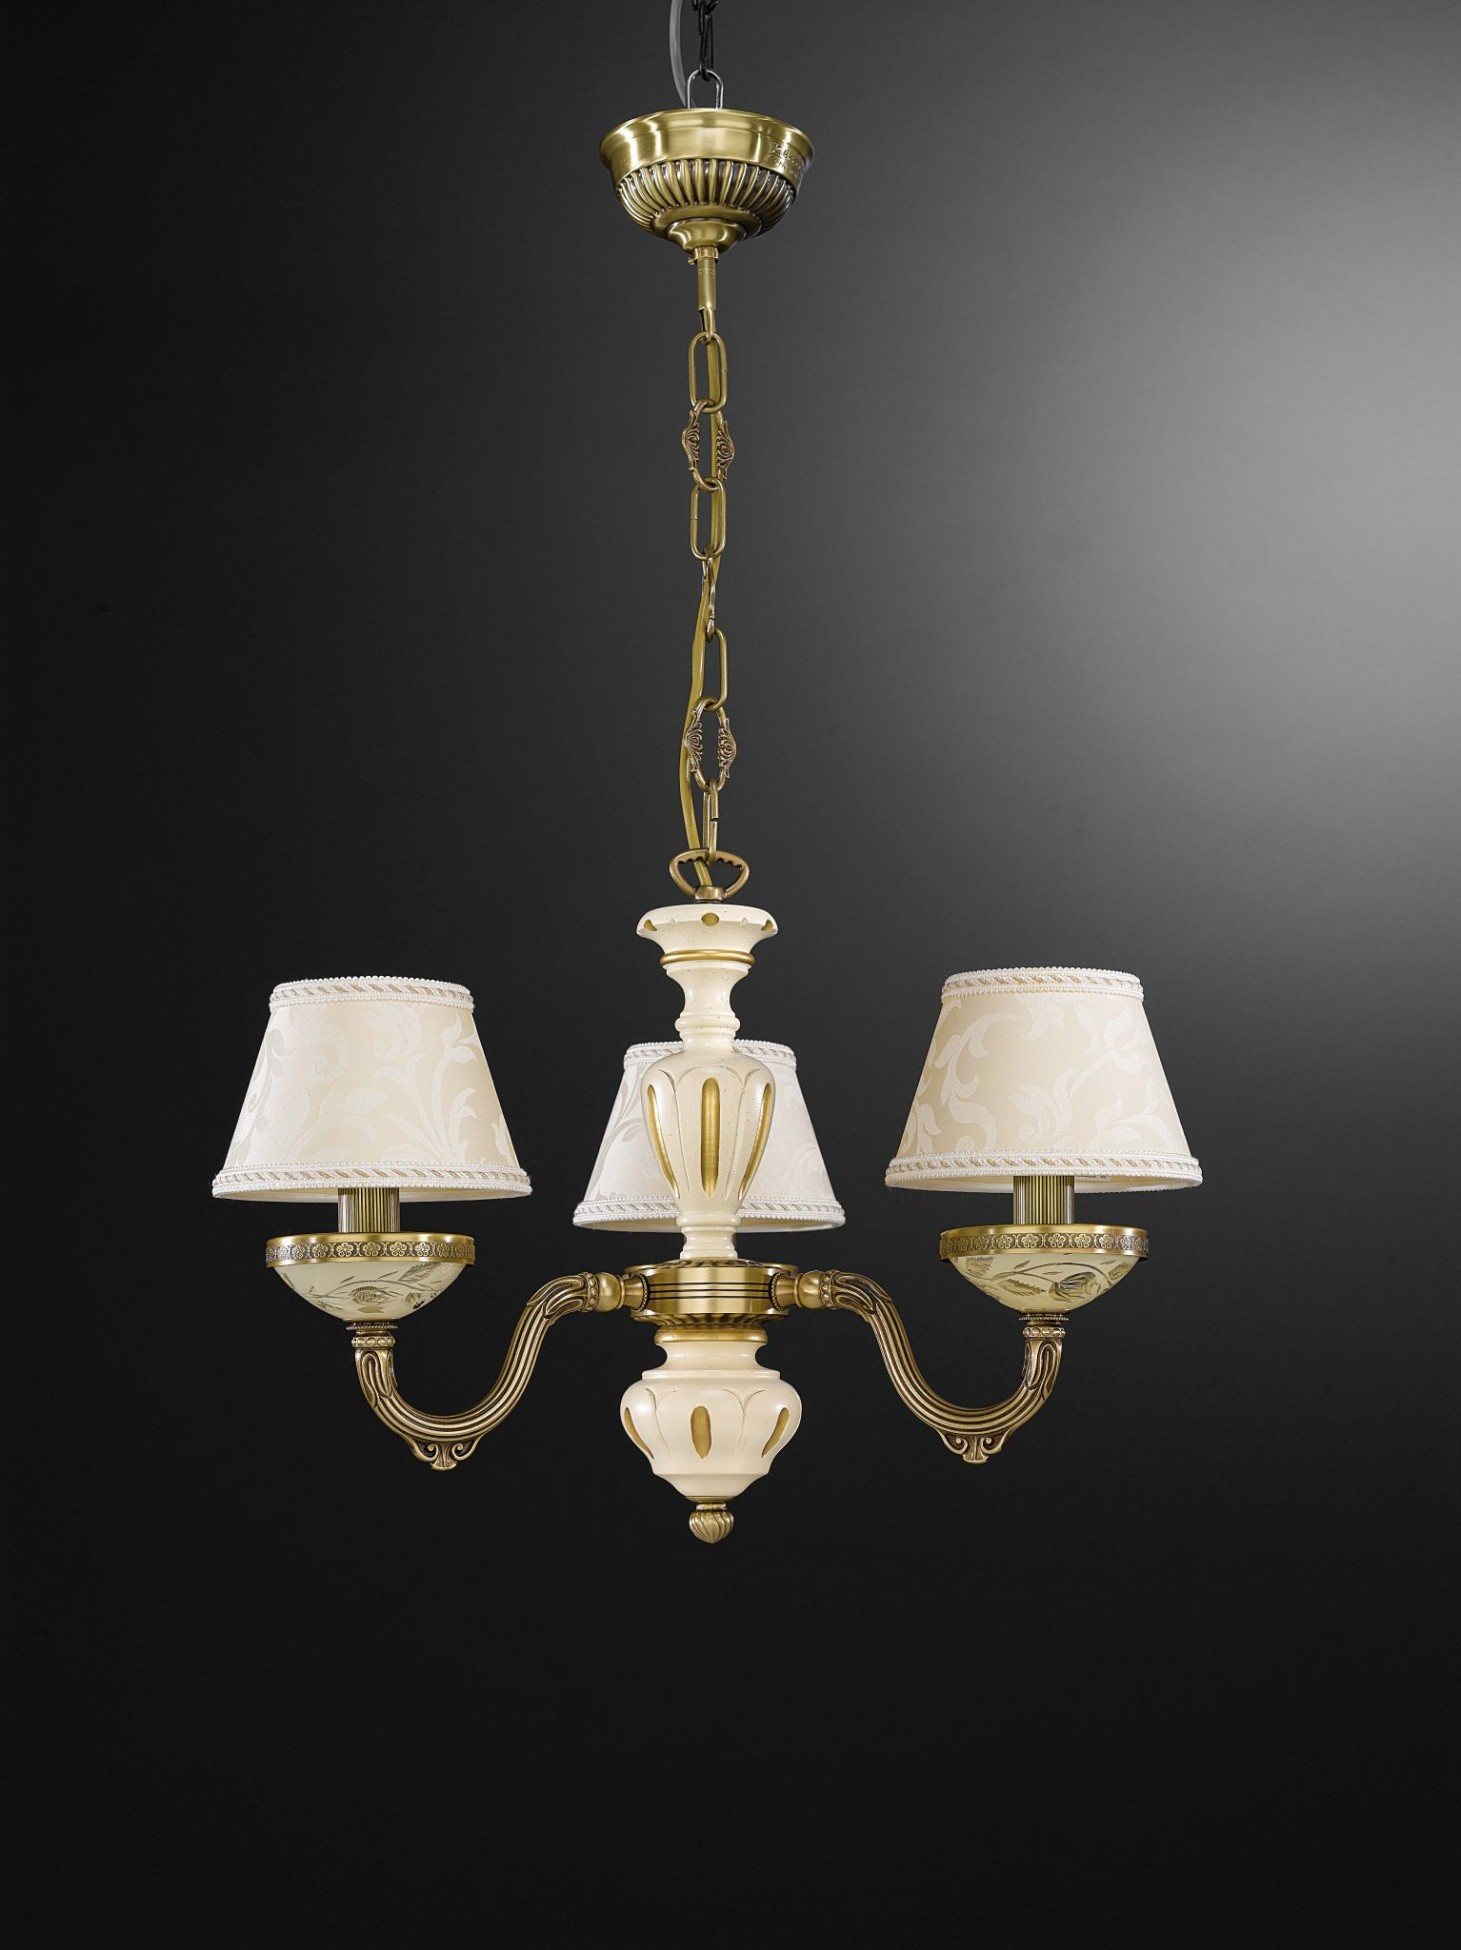 3 Lights Brass Wood And Cream Glass Chandelier With Lamp Shades